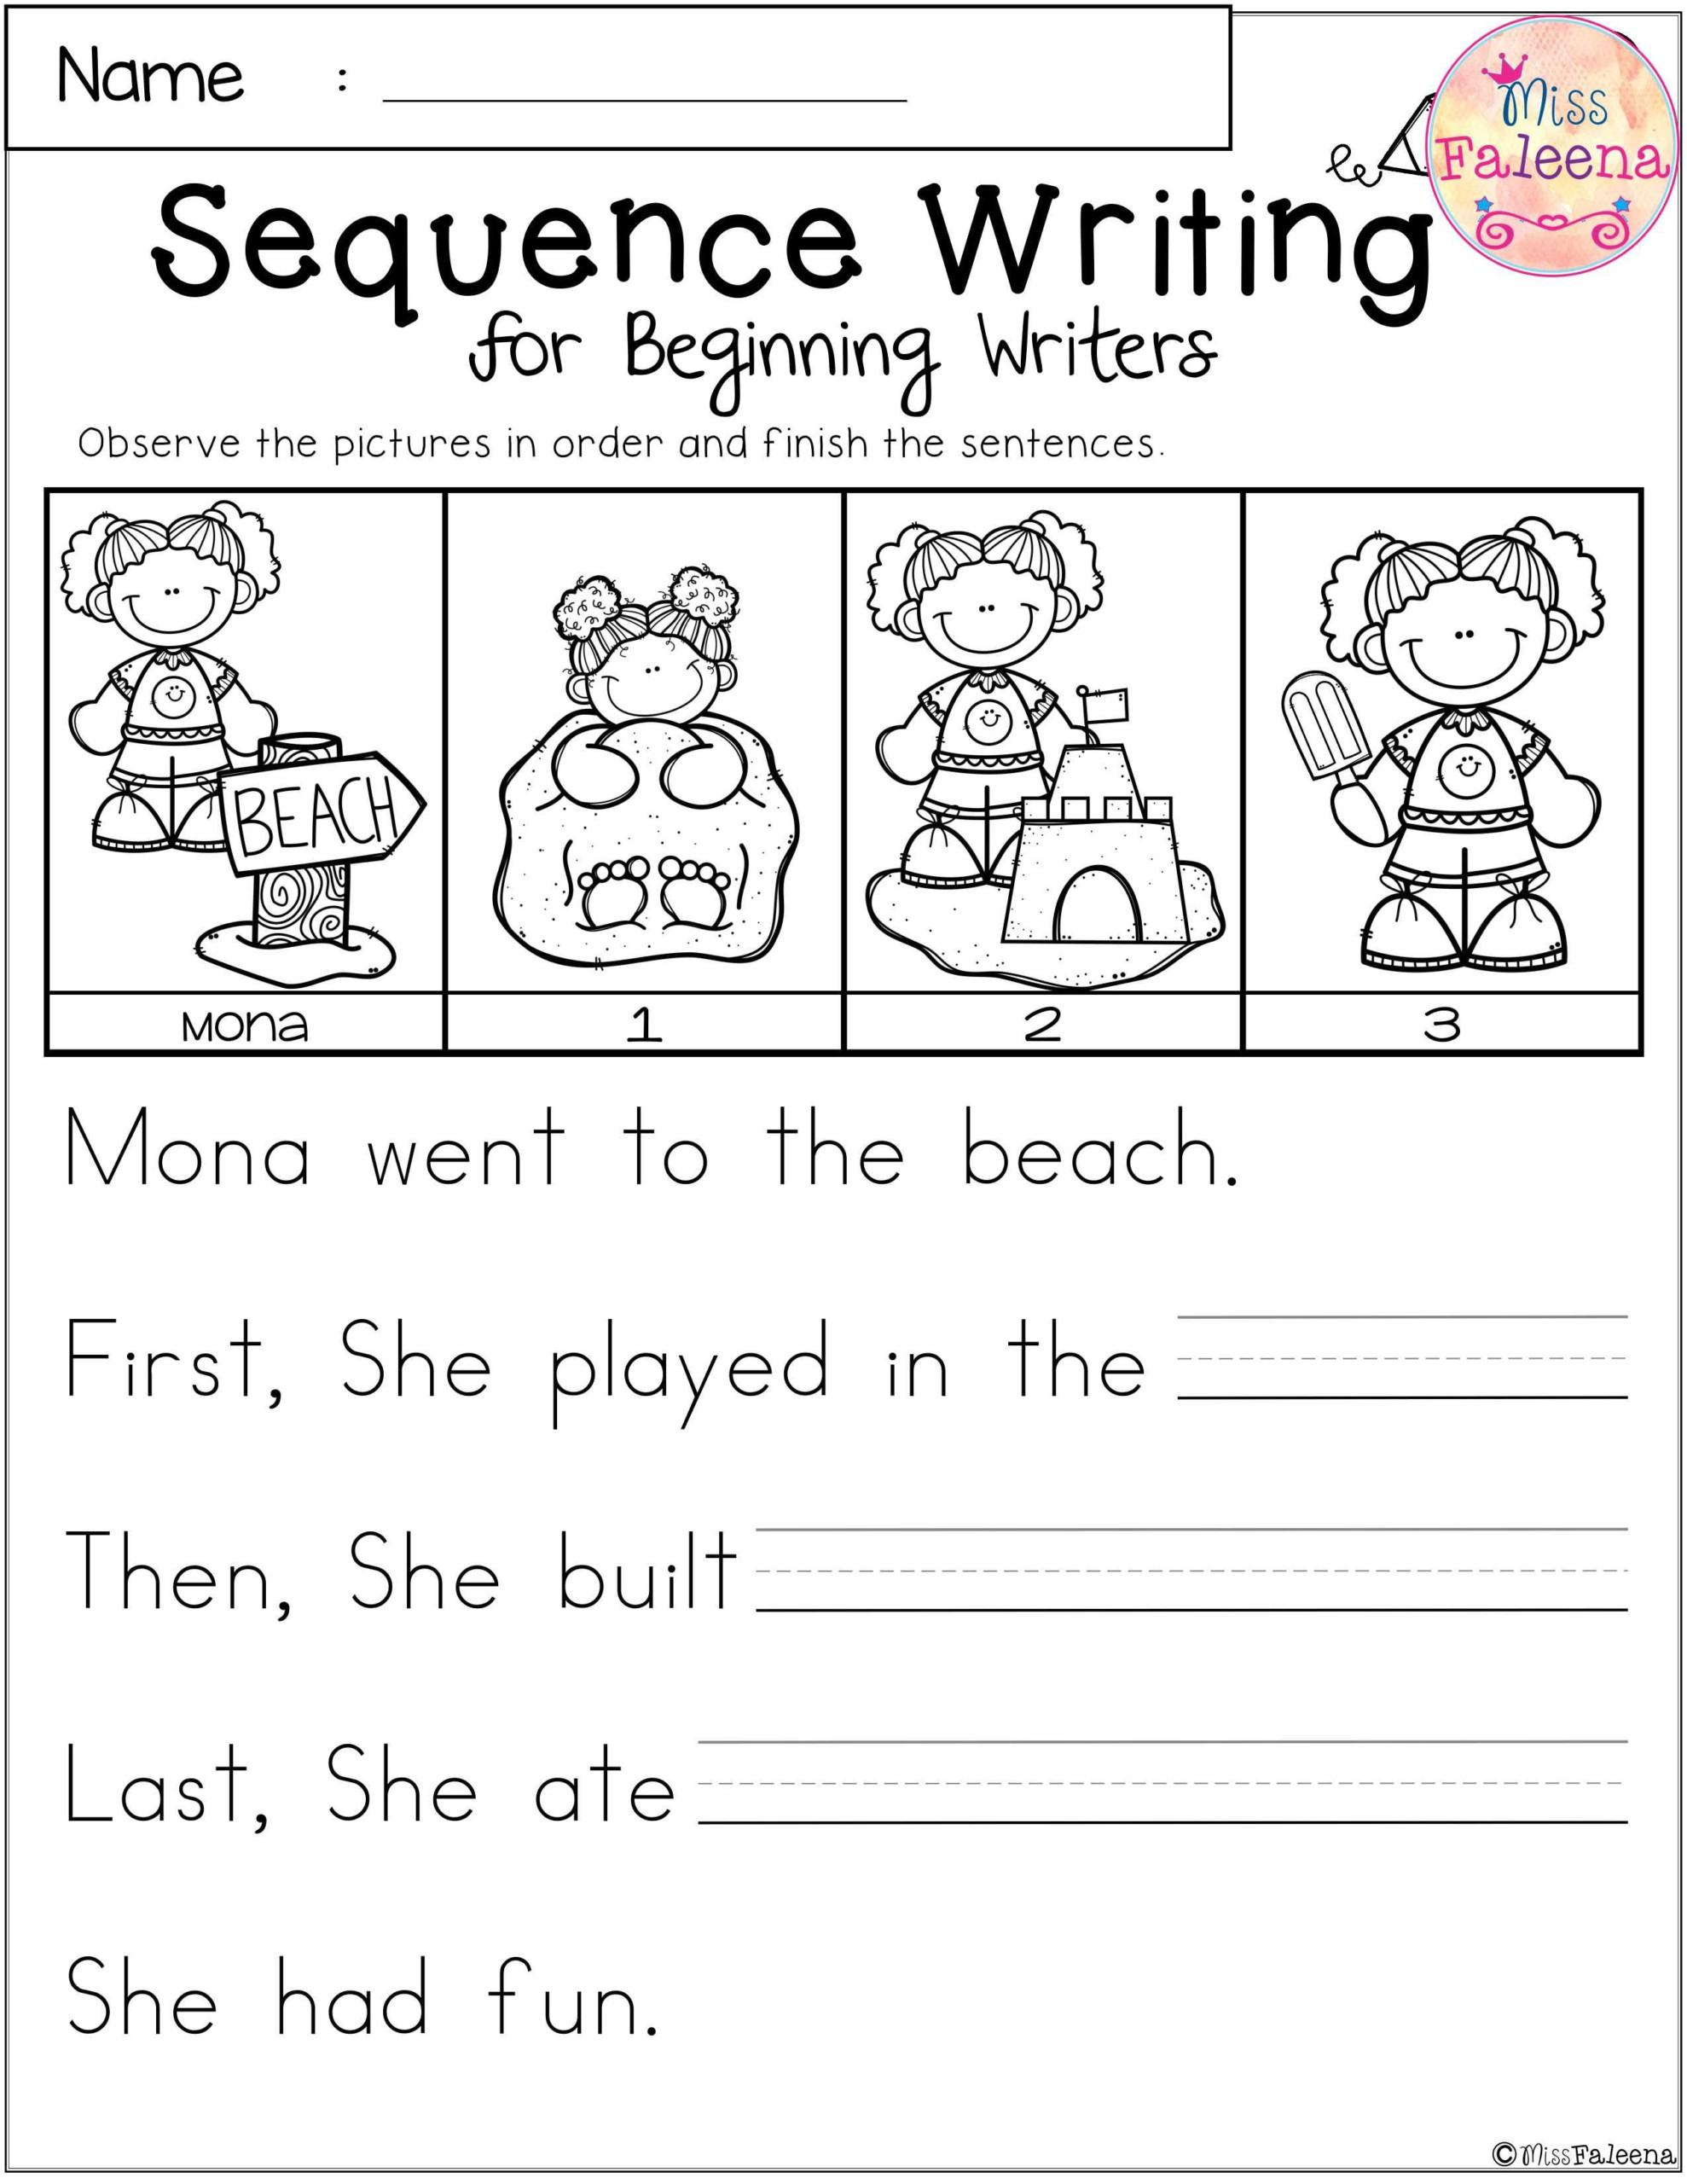 Free Sequence Writing For Beginning Writers | Sequence